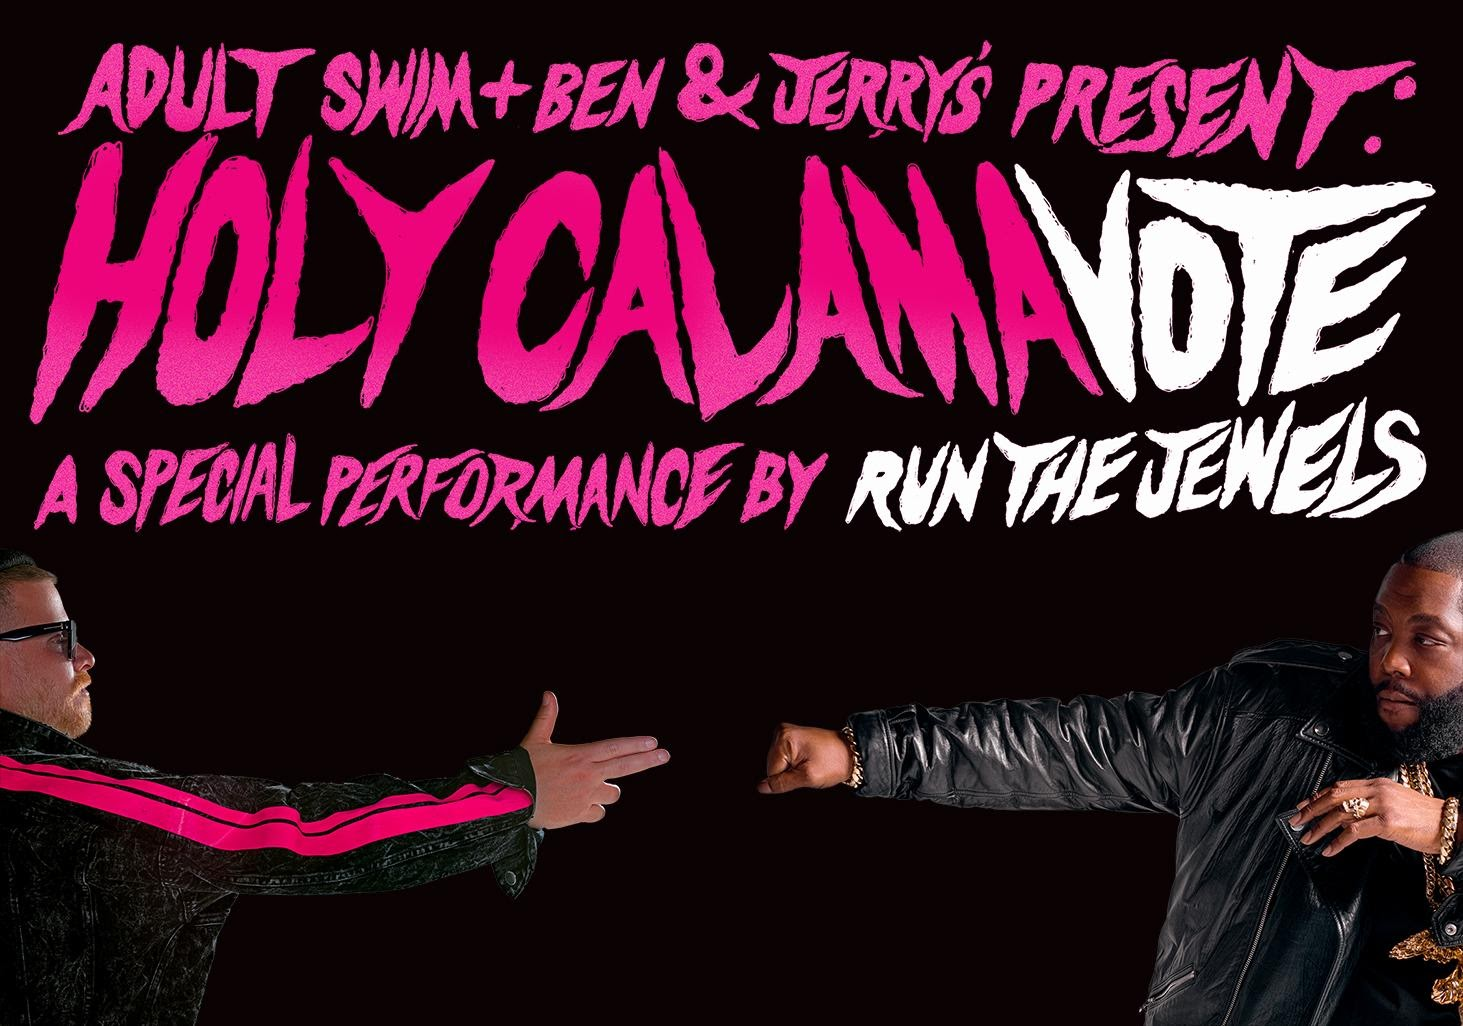 Run the Jewels flyer Holy Calamavote